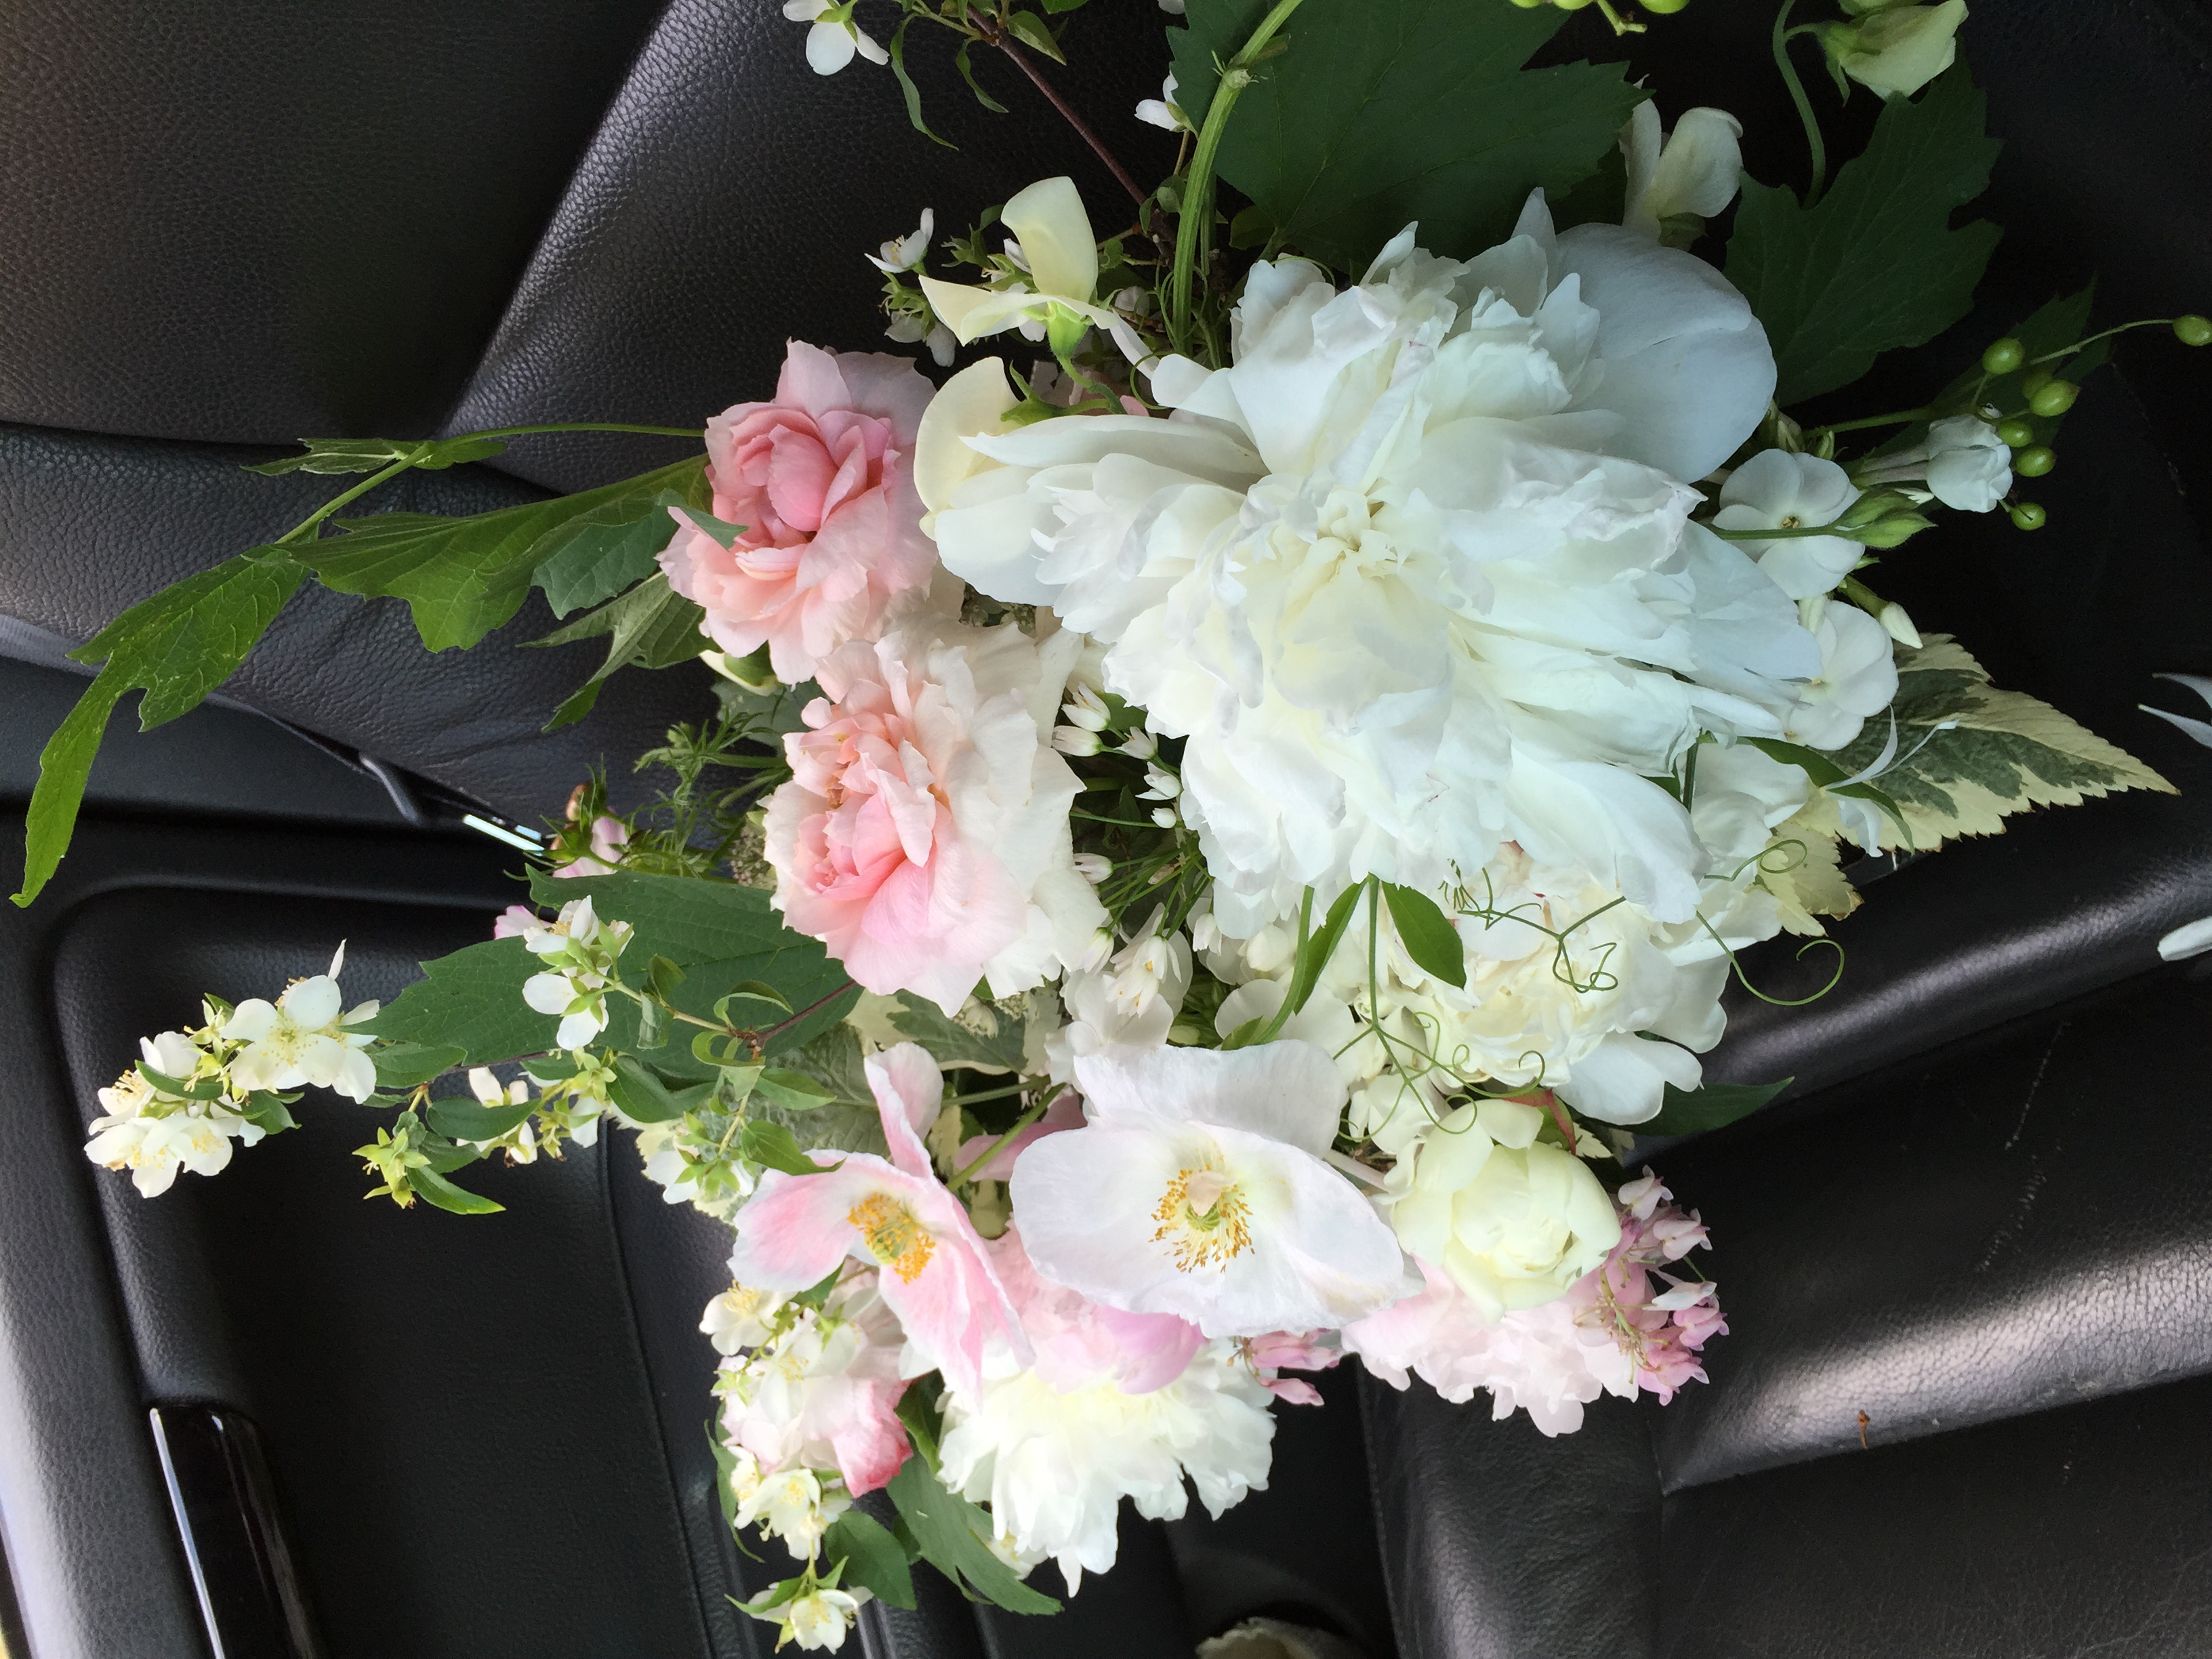 Special bouquets ride up front